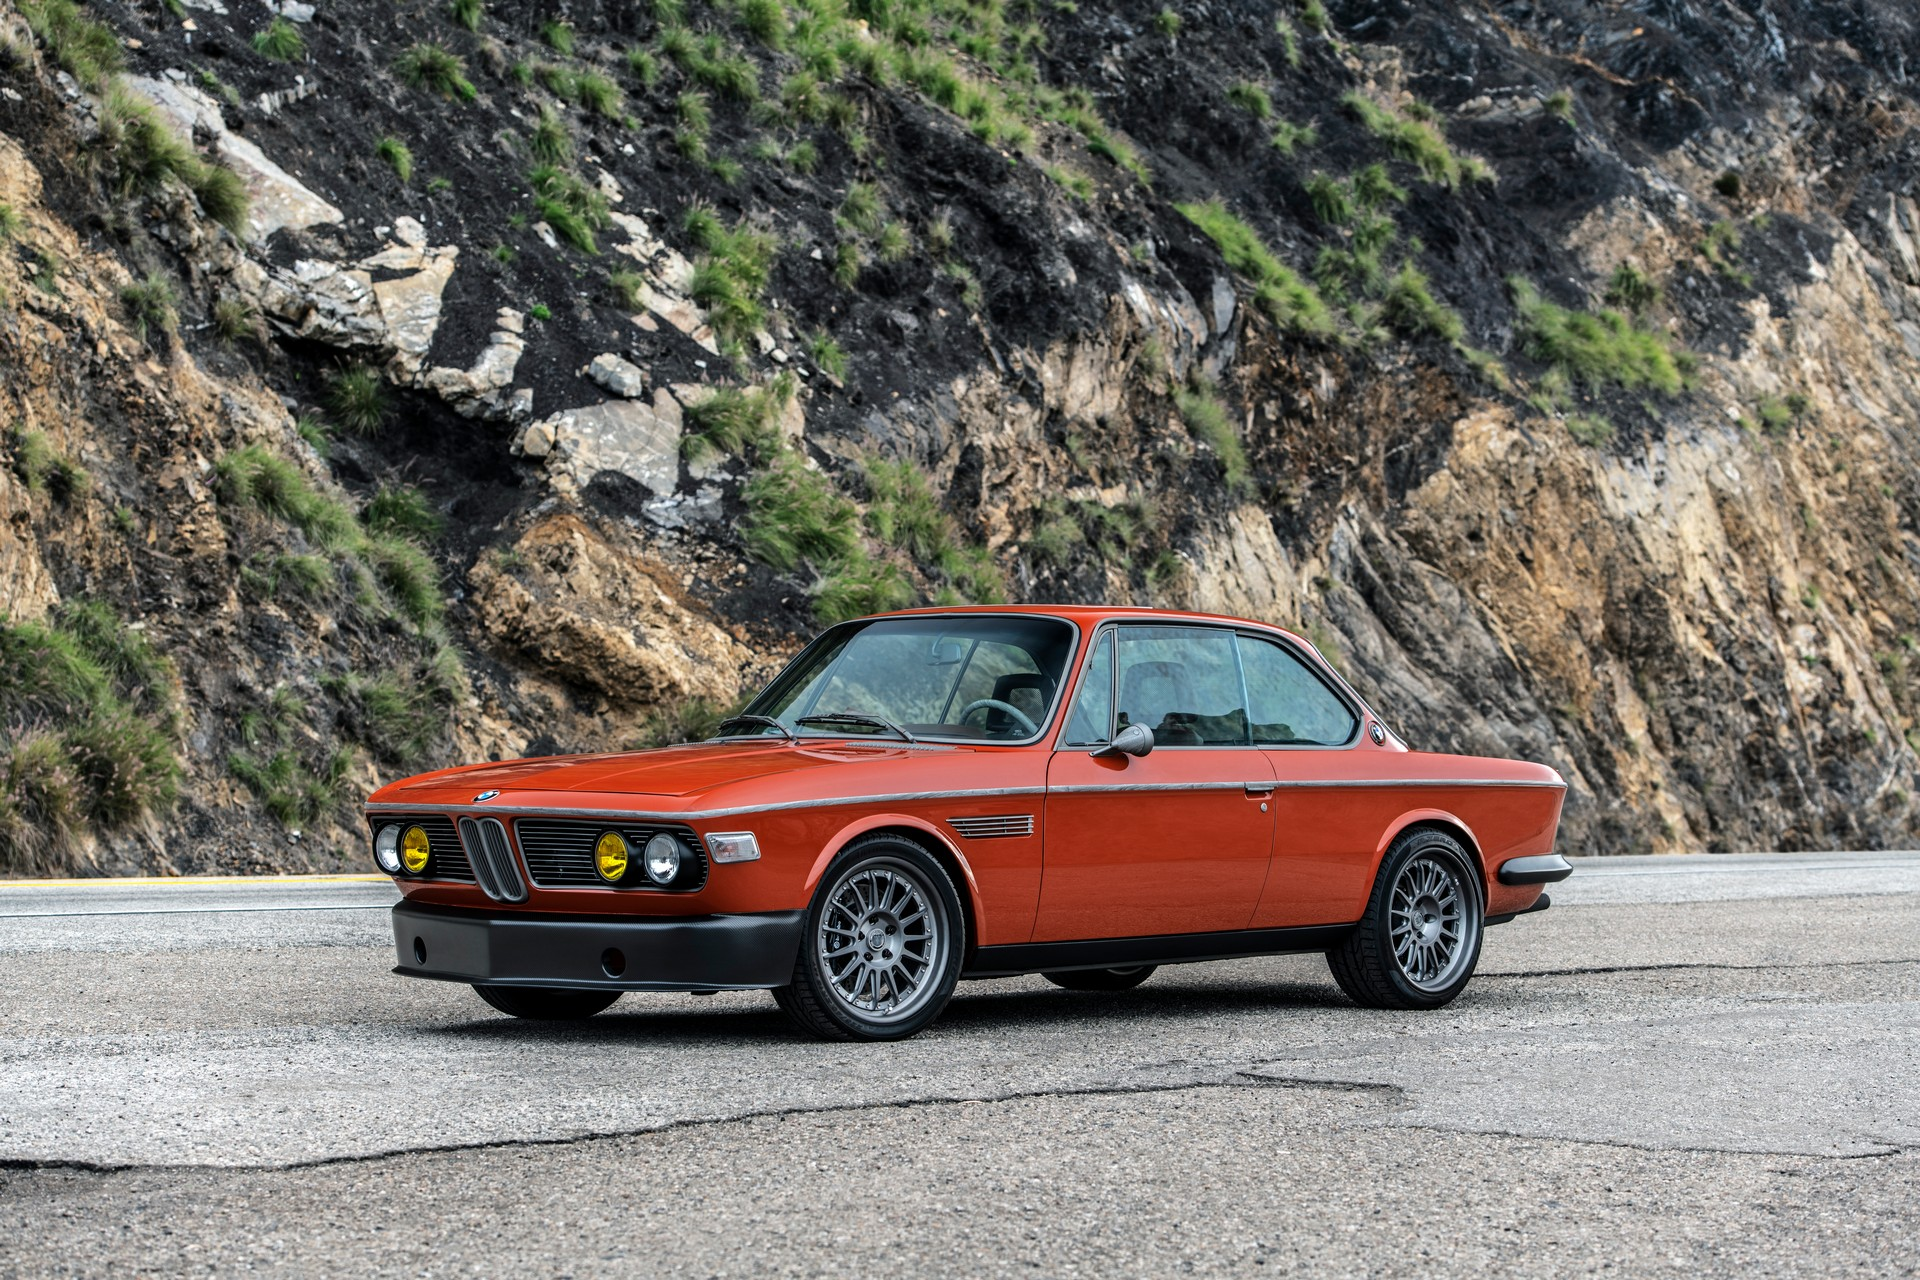 SPEEDKORE-1974-BMW-3.0-CS-6